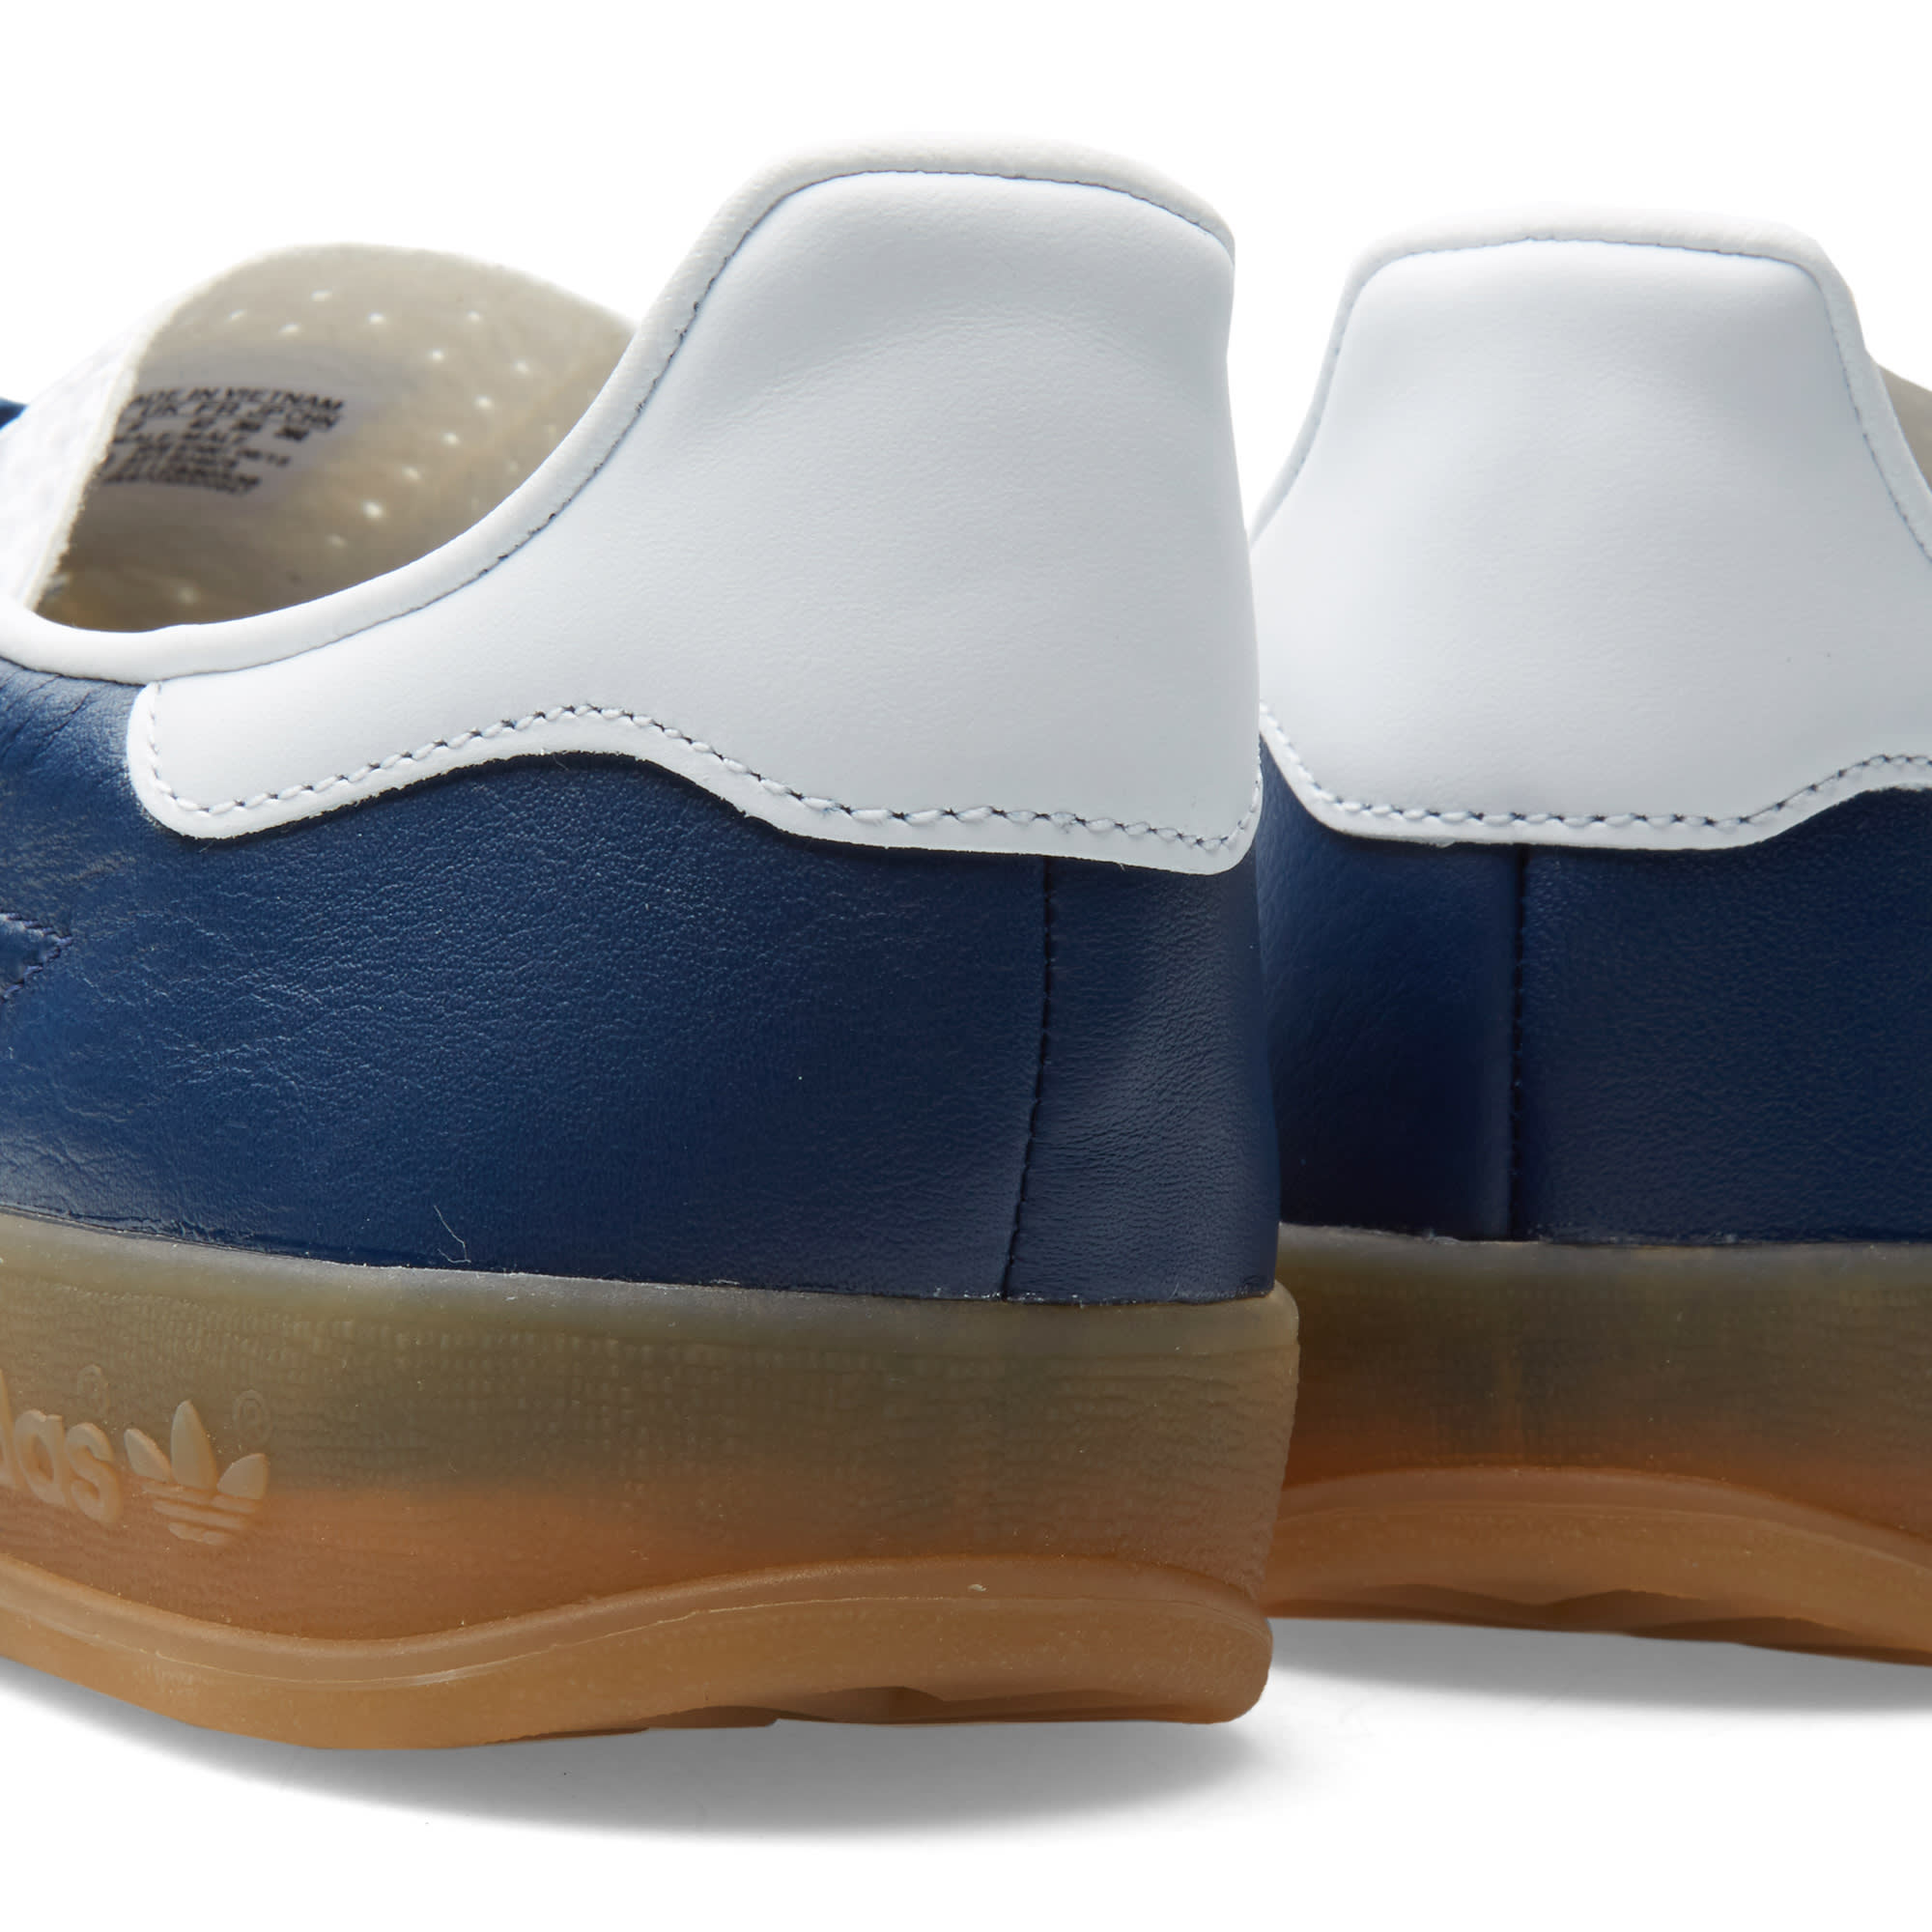 low priced b36f4 e3bee Adidas Gazelle Indoor Oxford Blue, White   Gum   END.